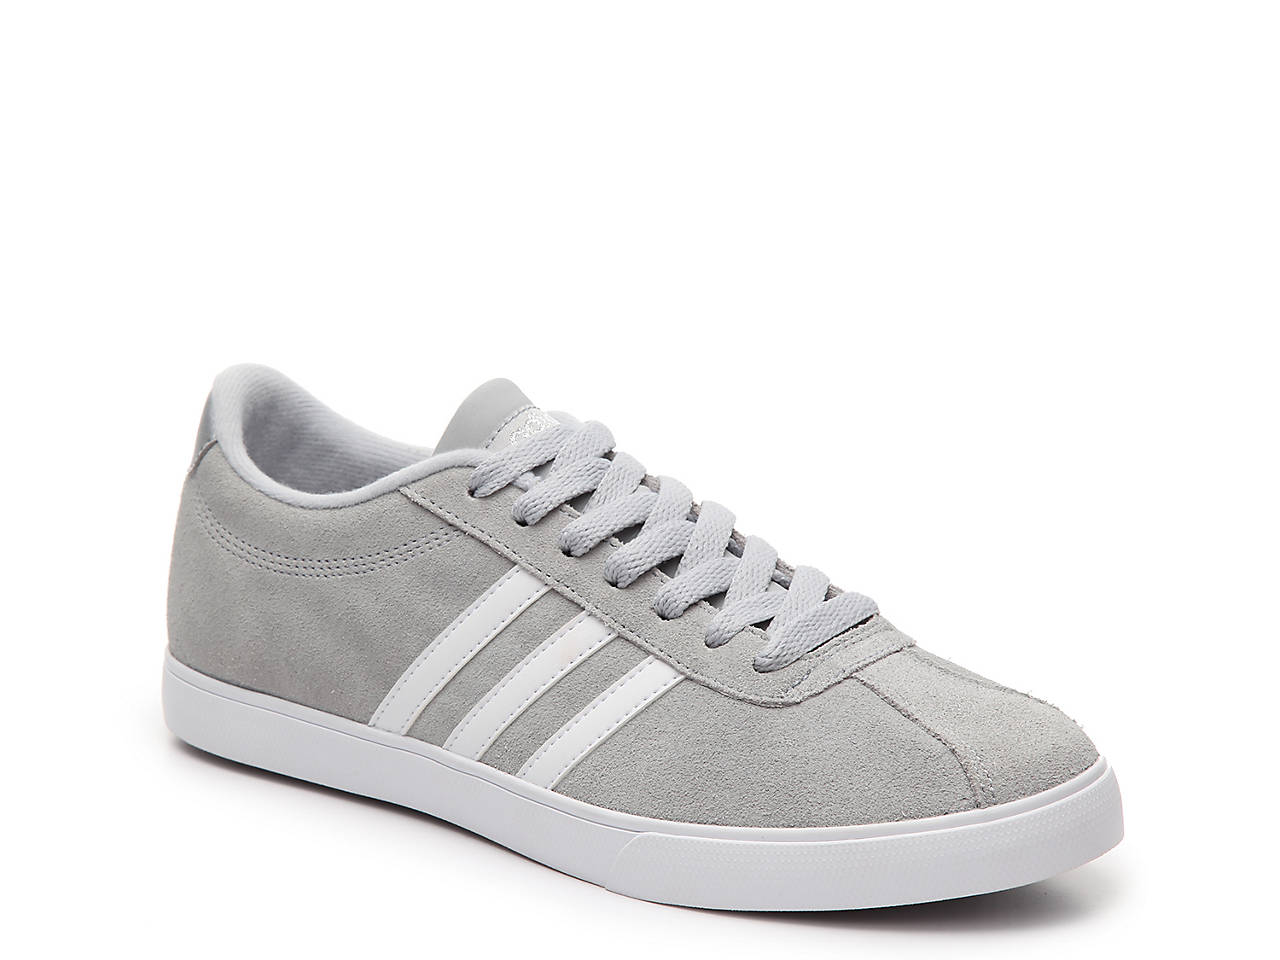 adidas Courtset Sneaker - Women s Women s Shoes  664dc4ebe